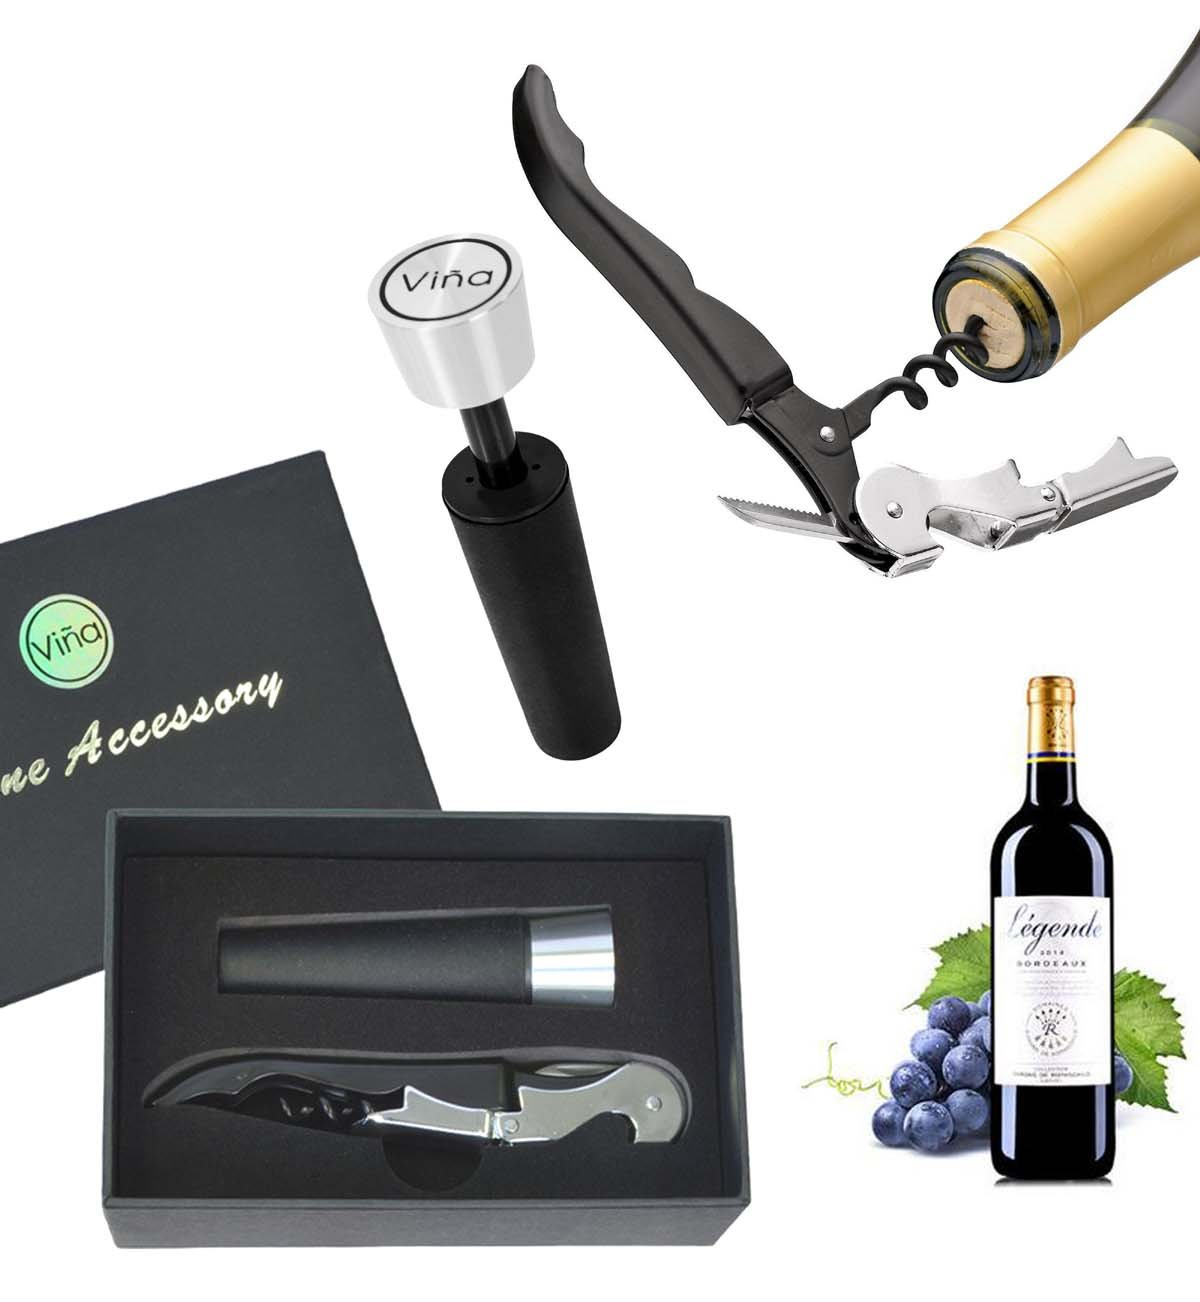 Vina Wine Bottle Opener Corkscrew + Vacuum Stopper, Stainless Steel Hippocampal Knife, 2pc Wine Accessory Set